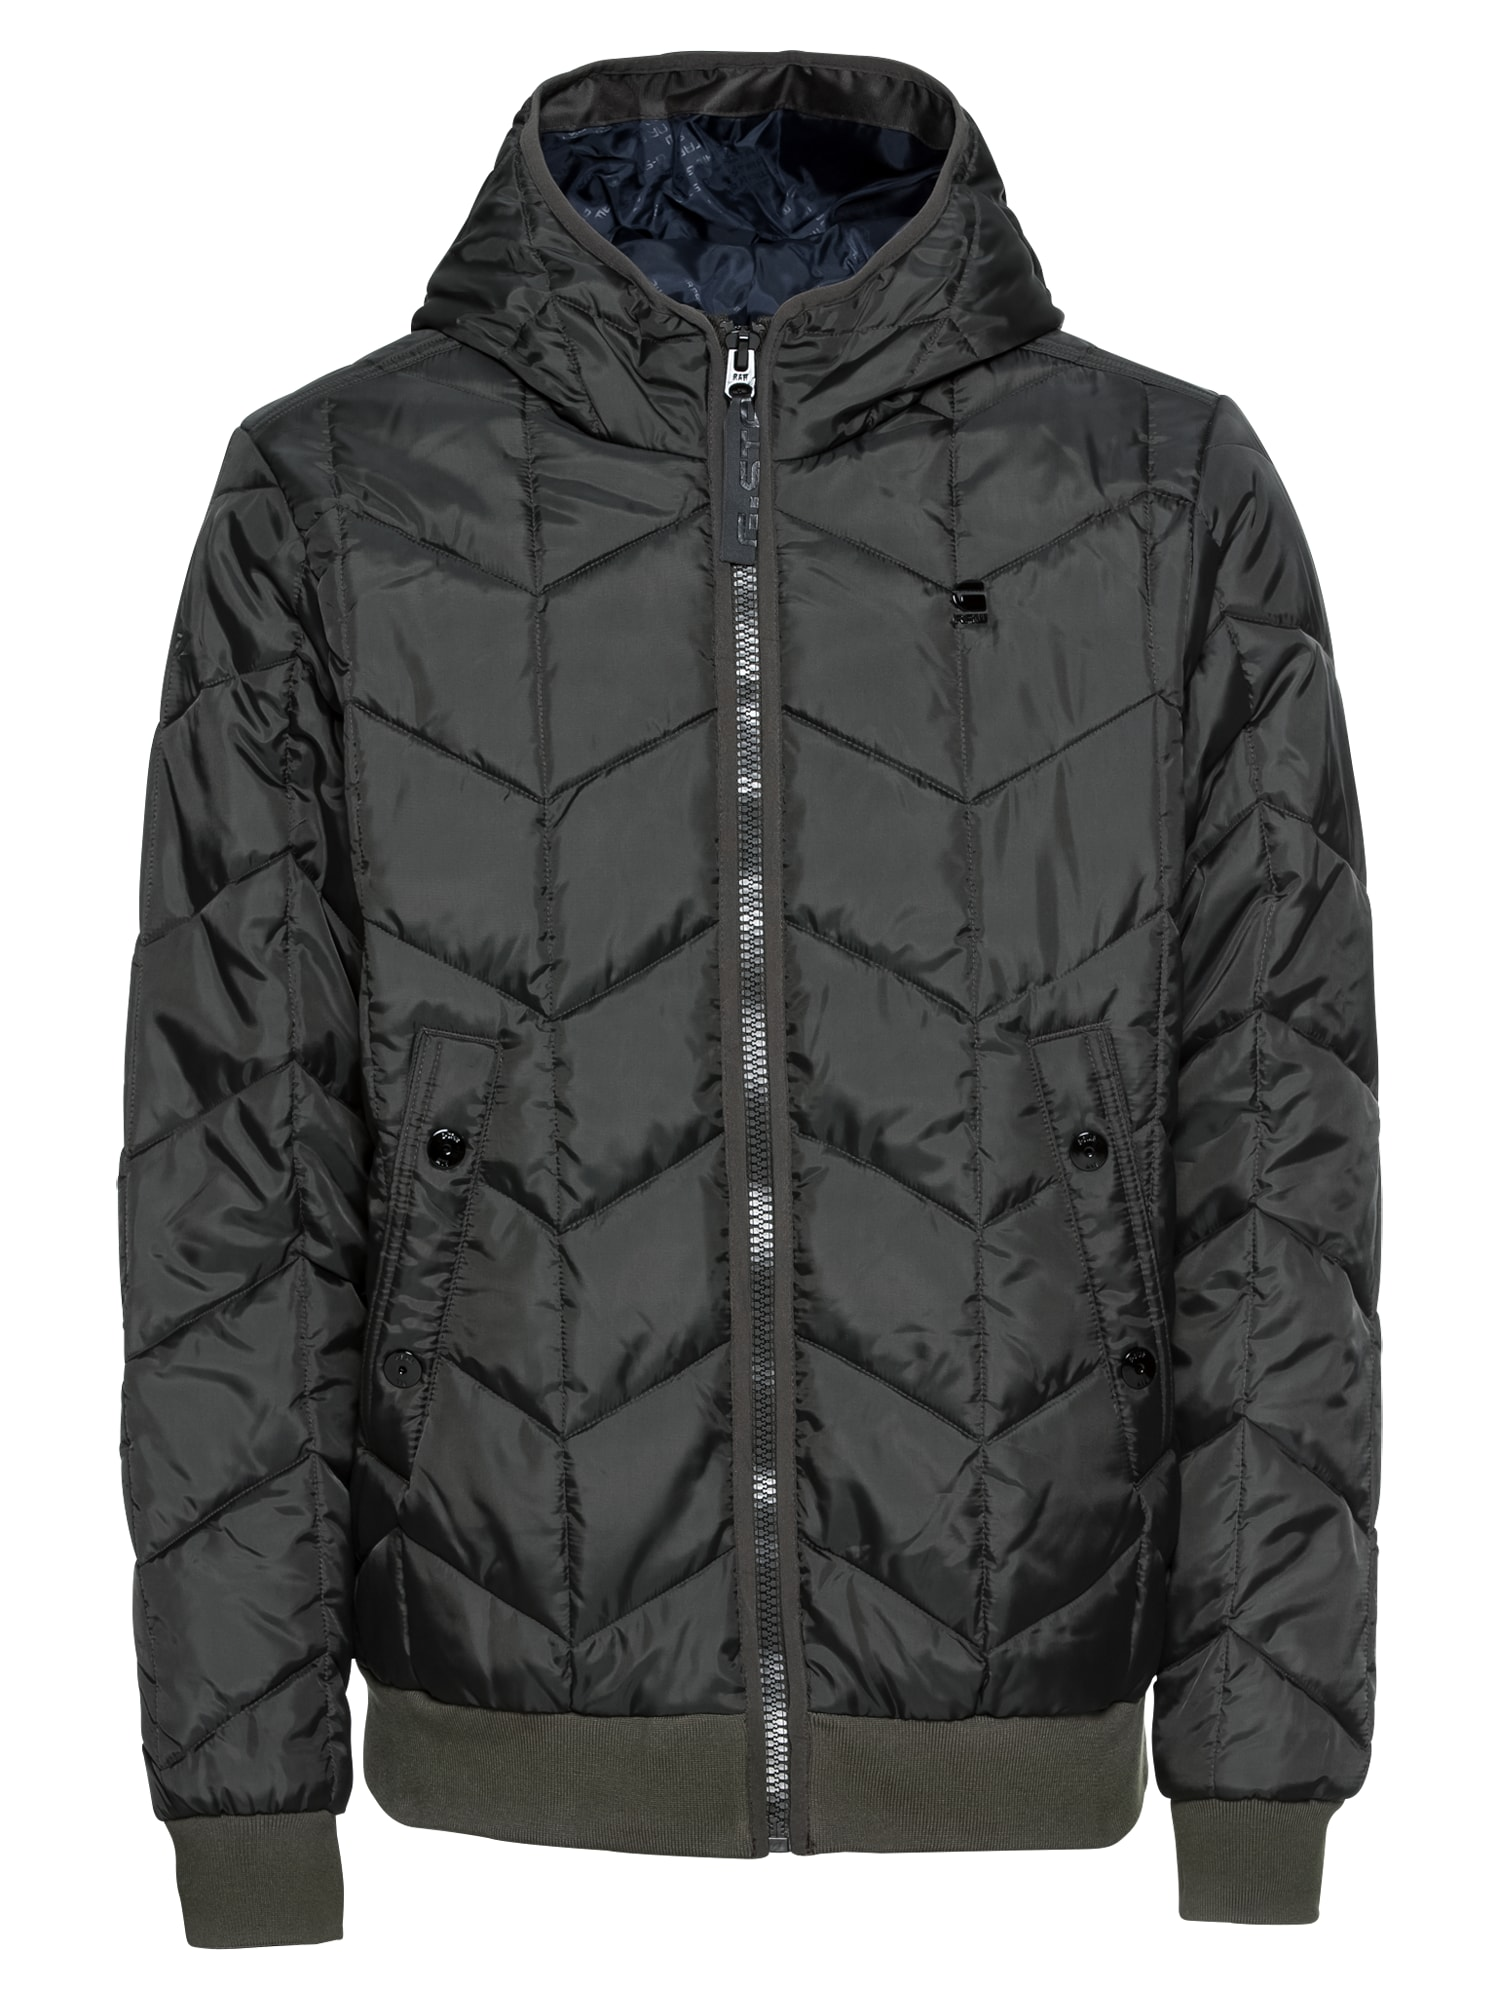 G-STAR RAW Heren Winterjas Whistler meefic quilted hdd bomber donkergrijs